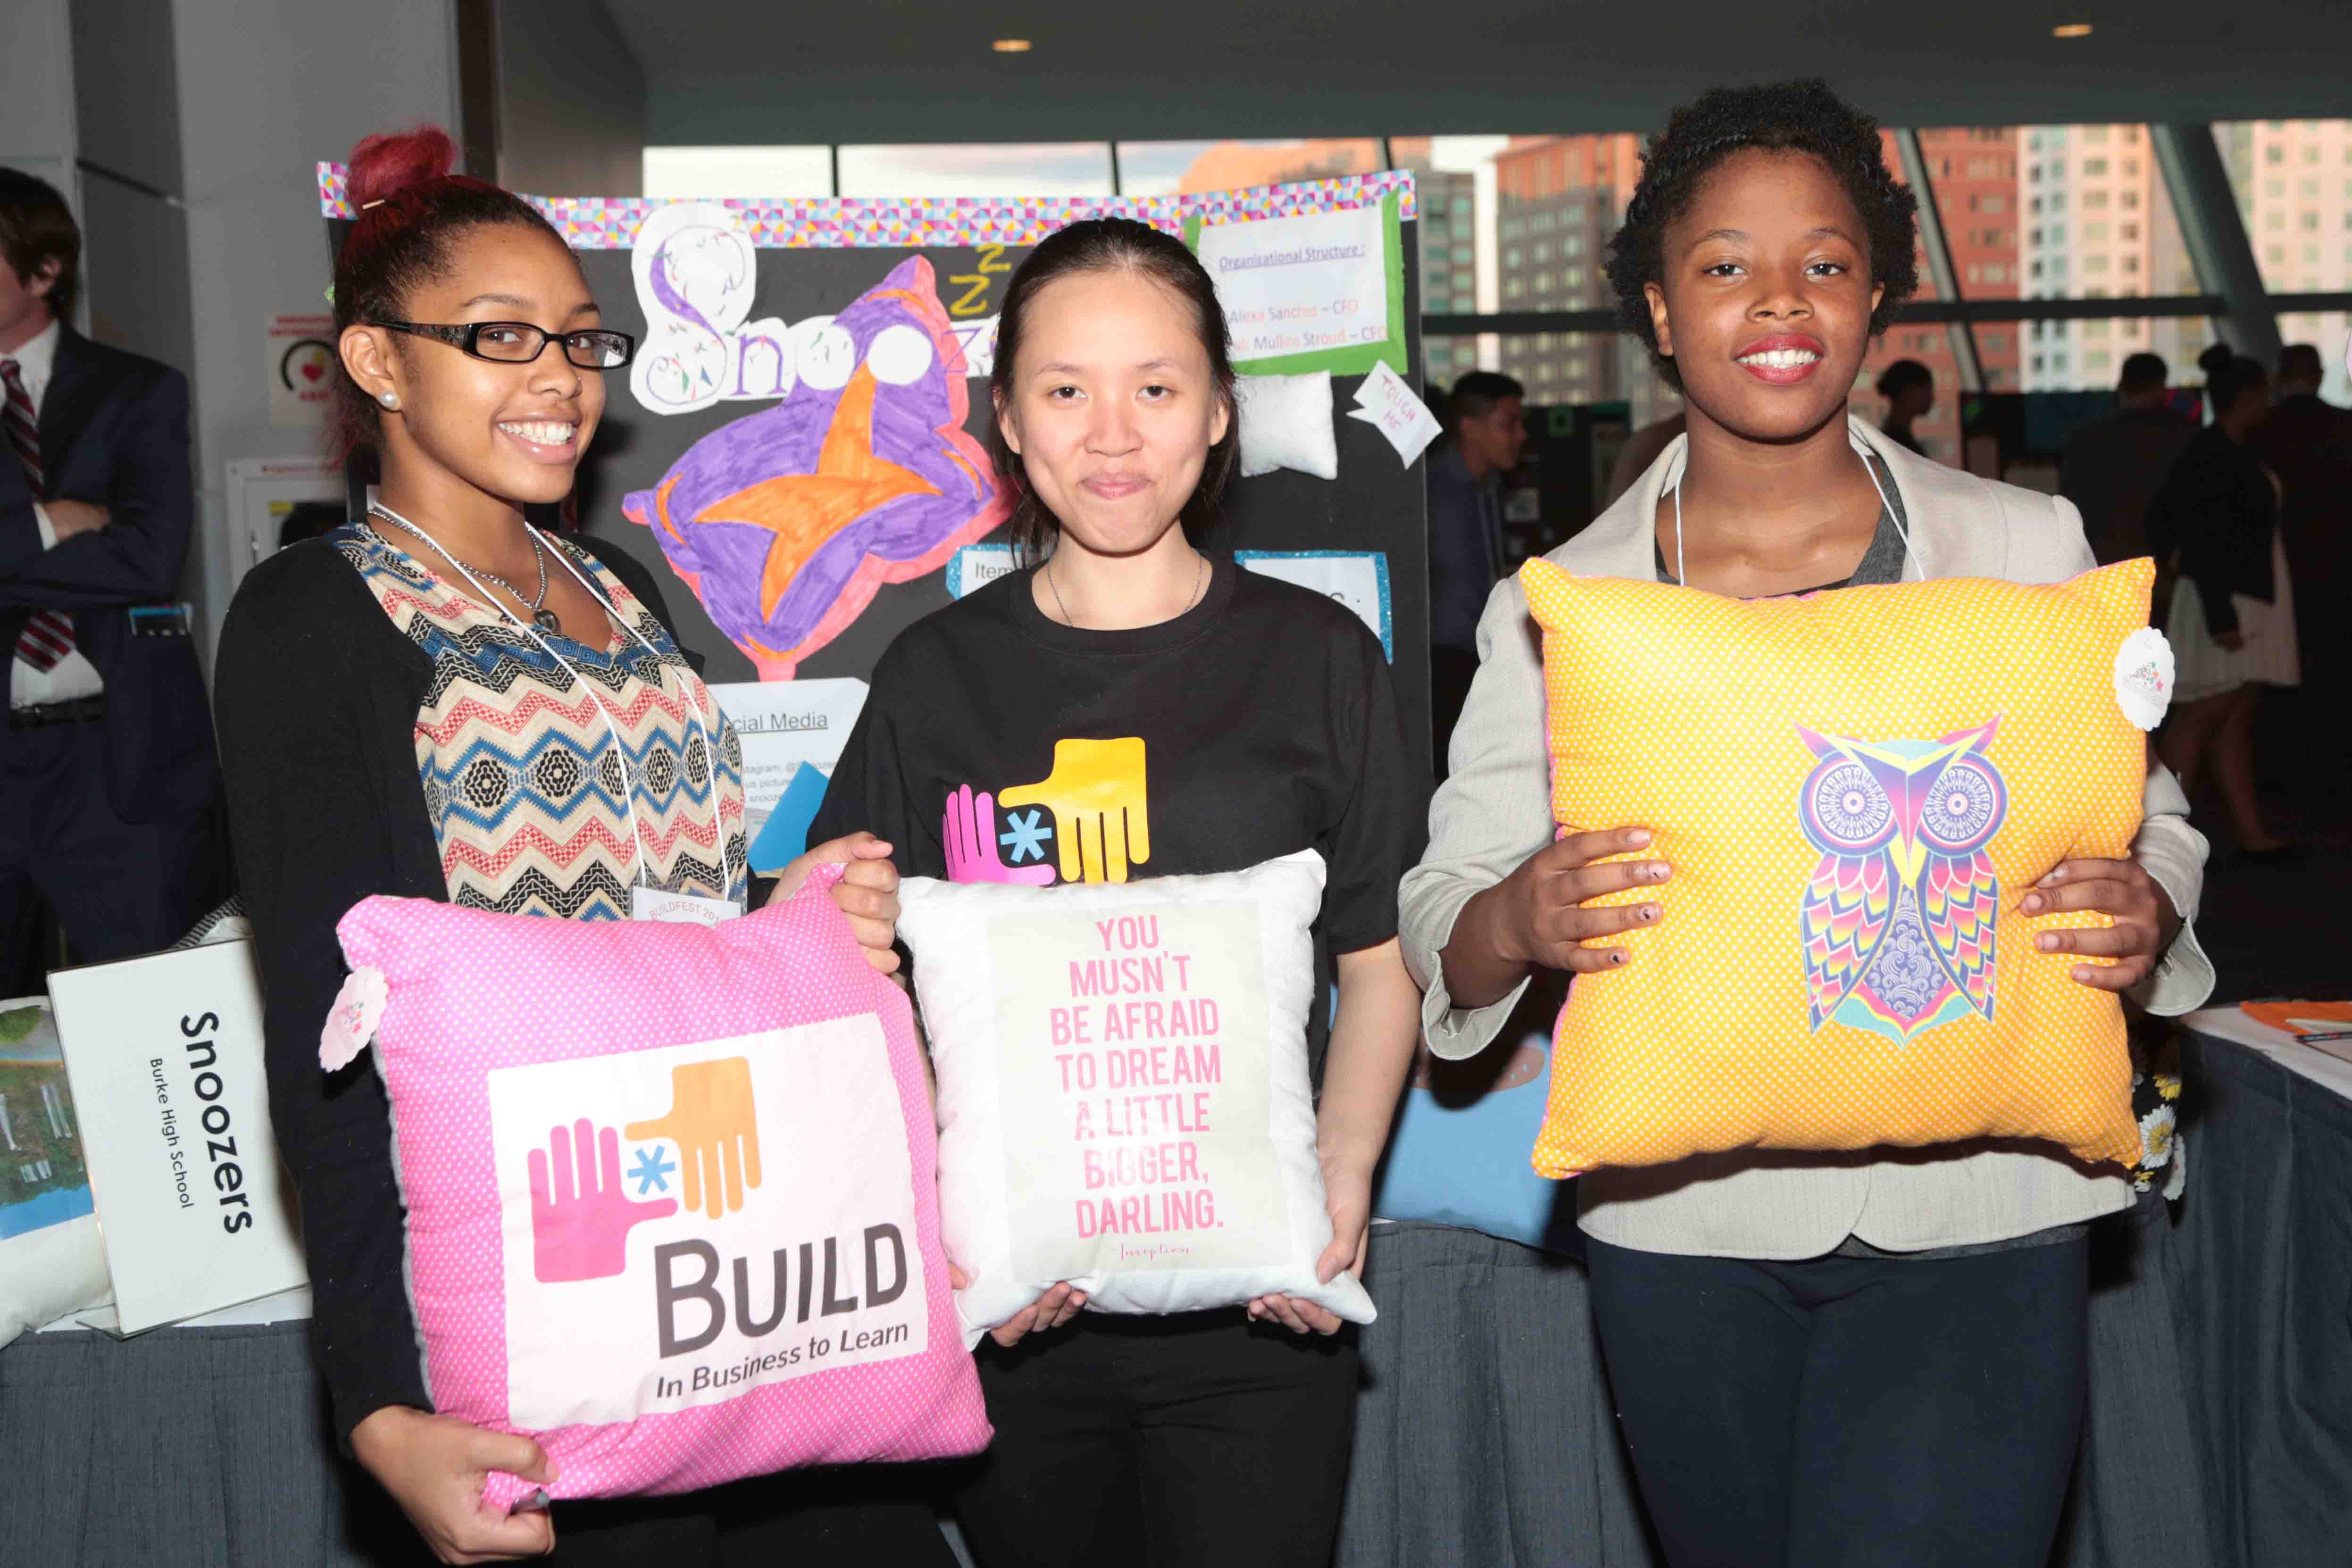 Students Show Their Products at BUILD Student Business Expo